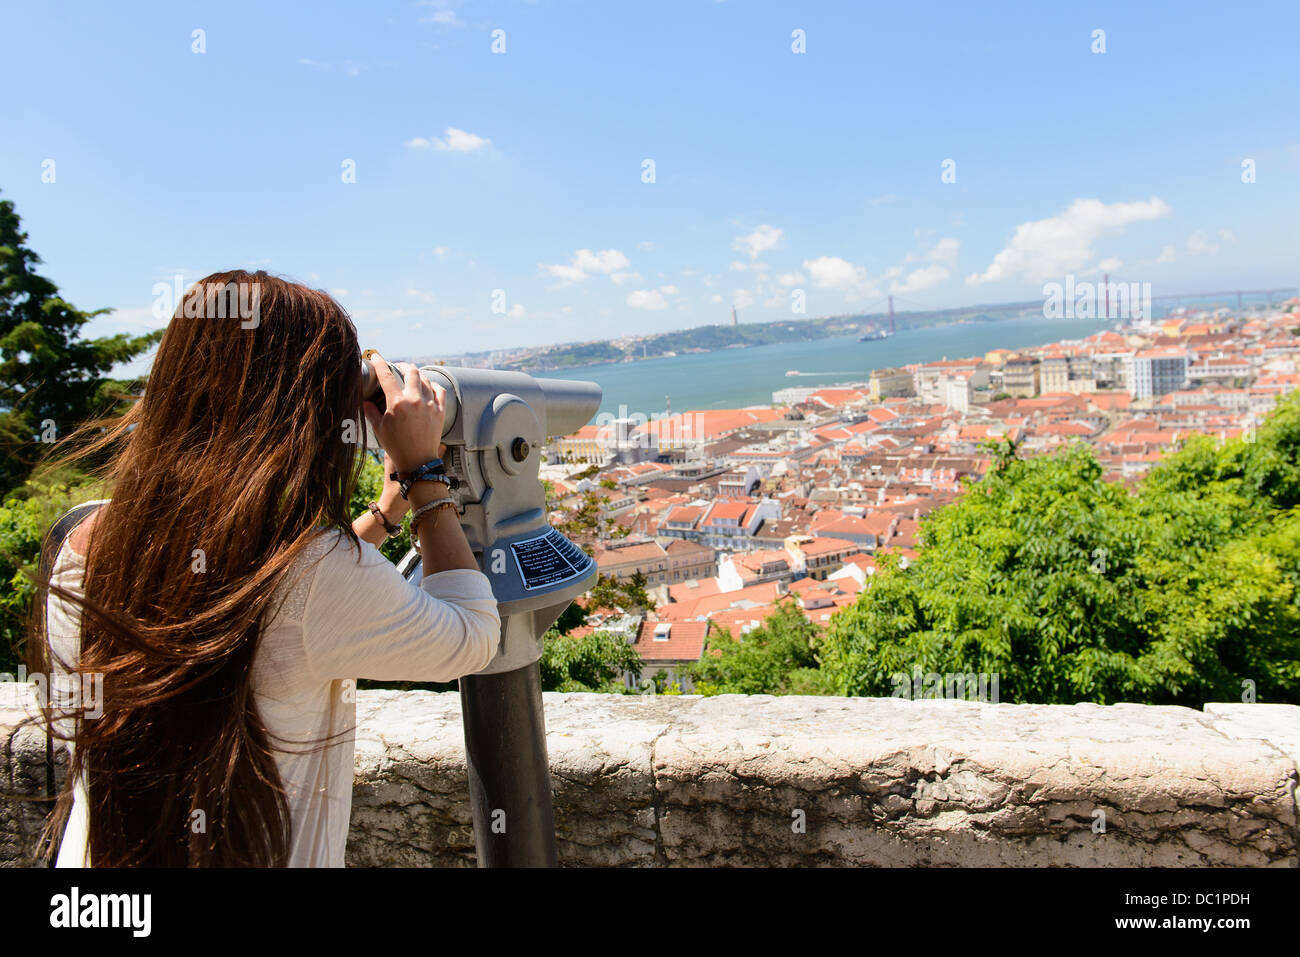 Young female tourist looking through coin operated binoculars in Lisbon, Portugal - Stock Image